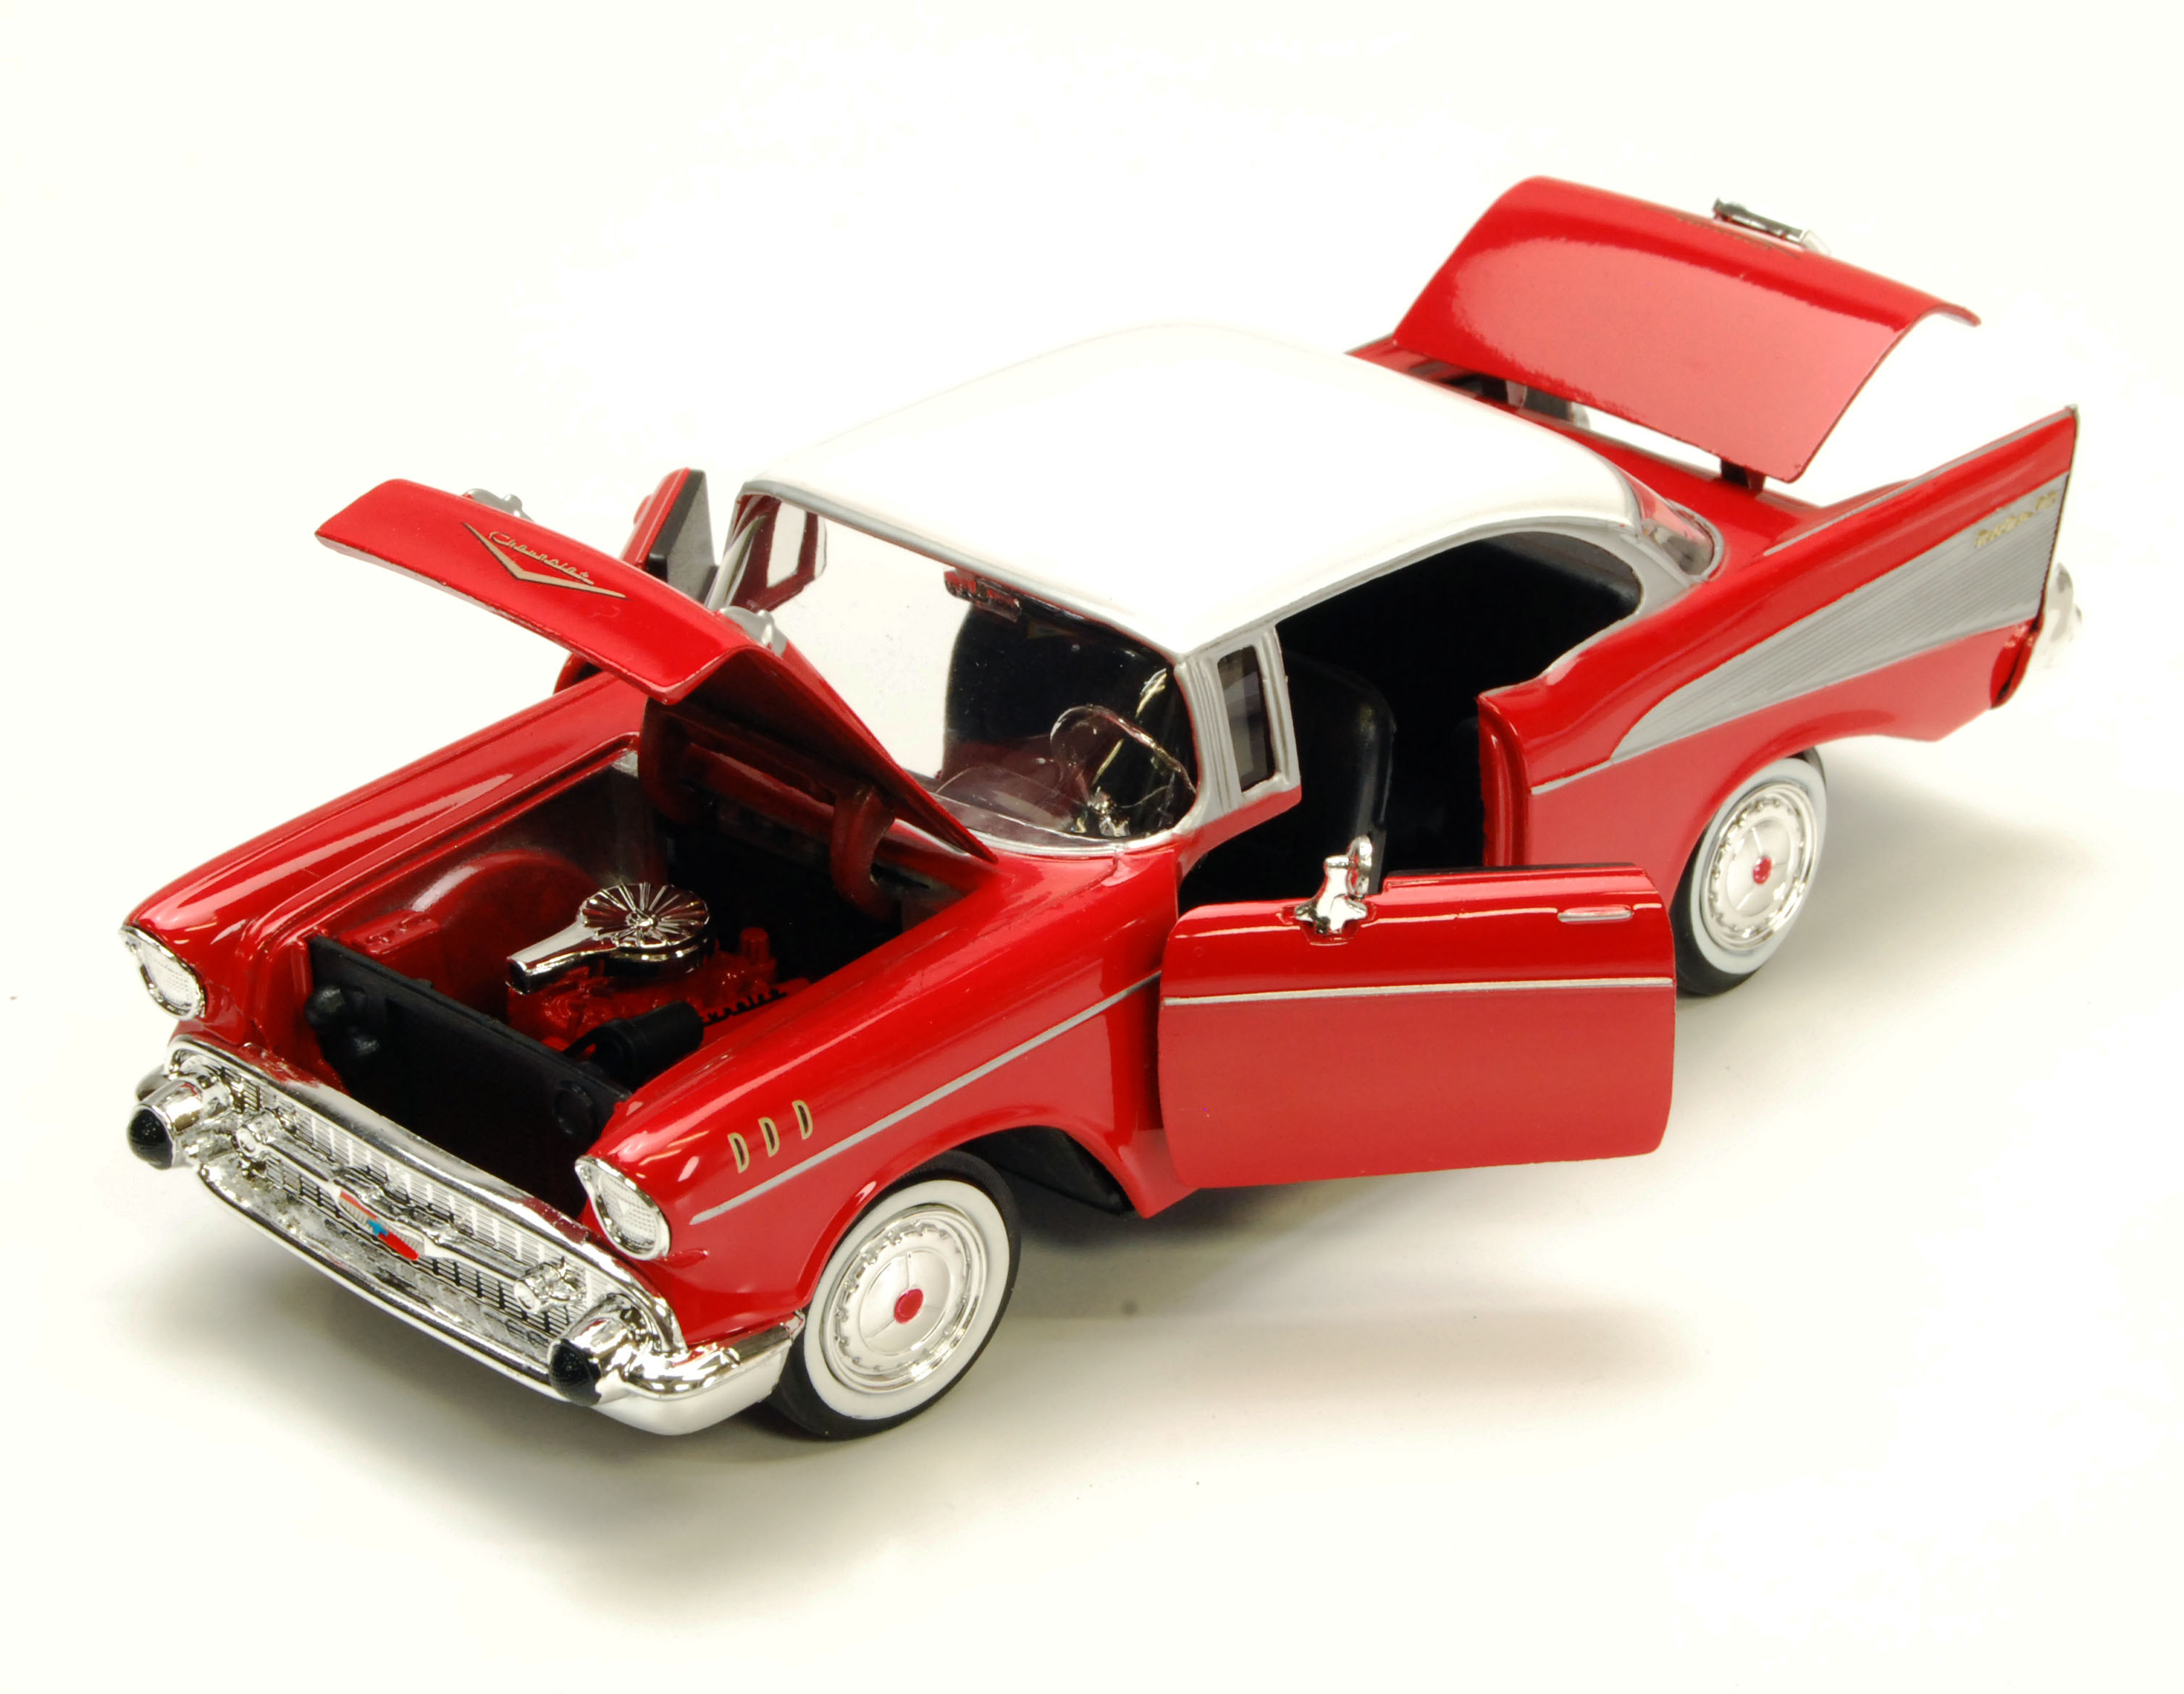 1957 Chevy Bel Air, Red - Showcasts 73228 - 1/24 scale diecast model ...